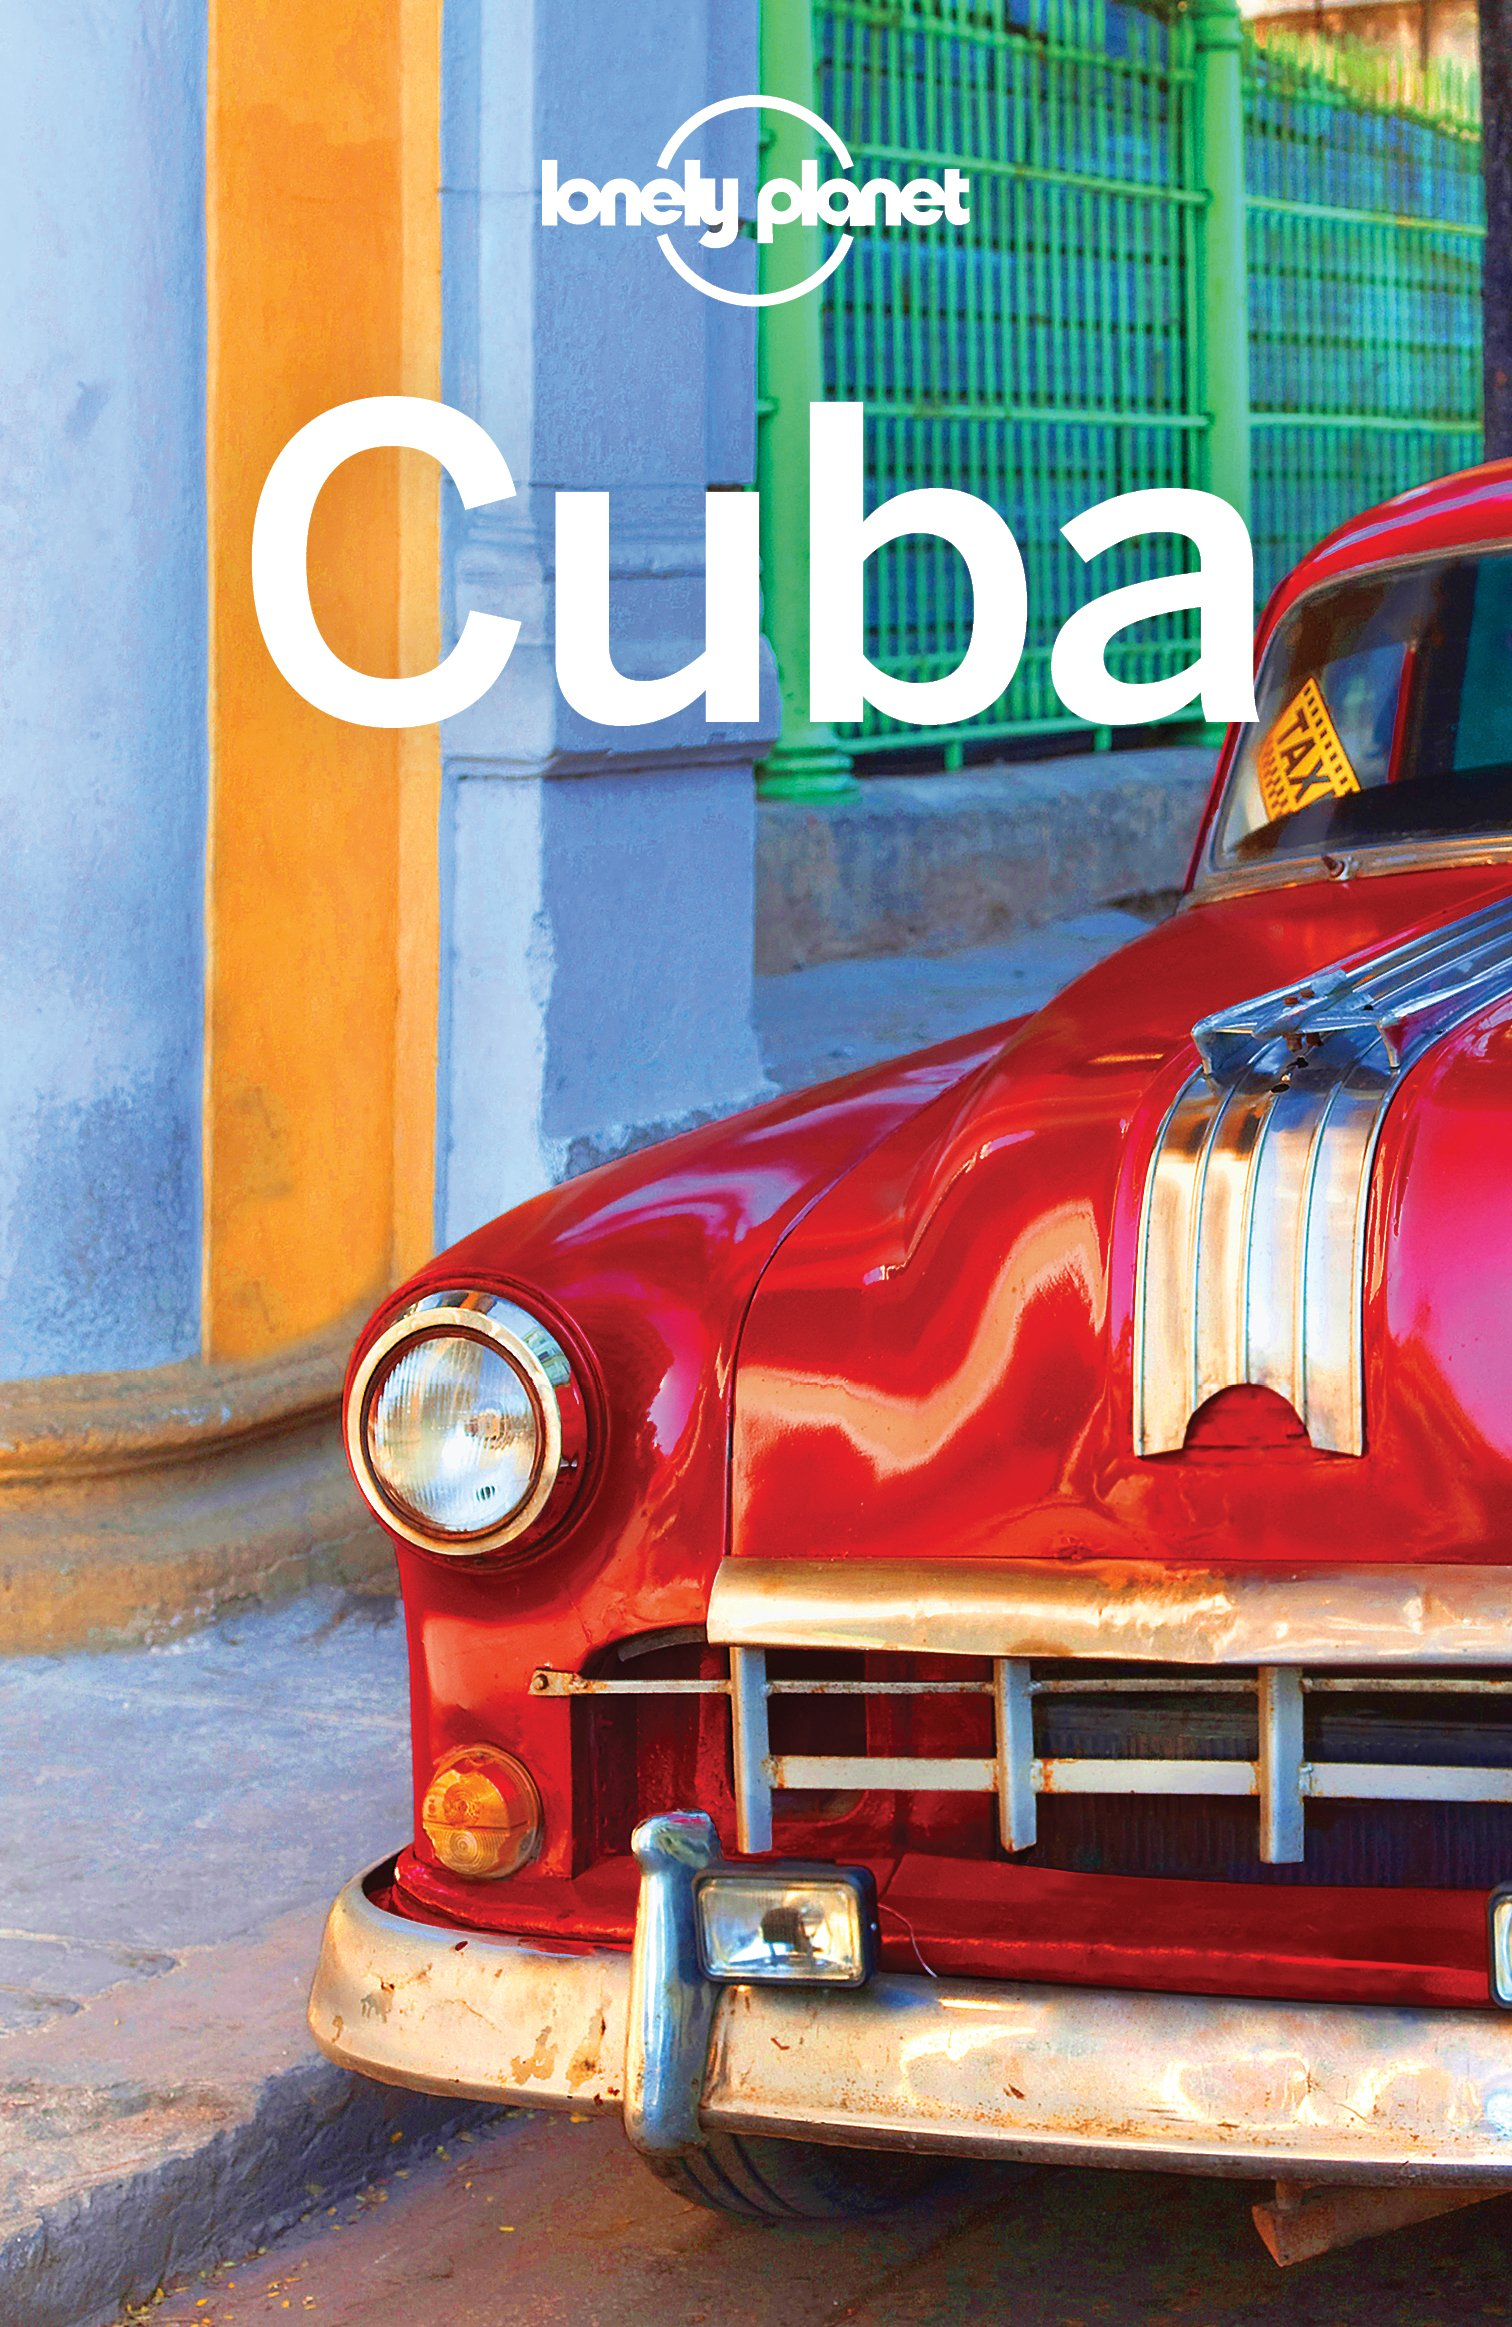 Lonely Planet Cuba  Travel Guide   English Edition